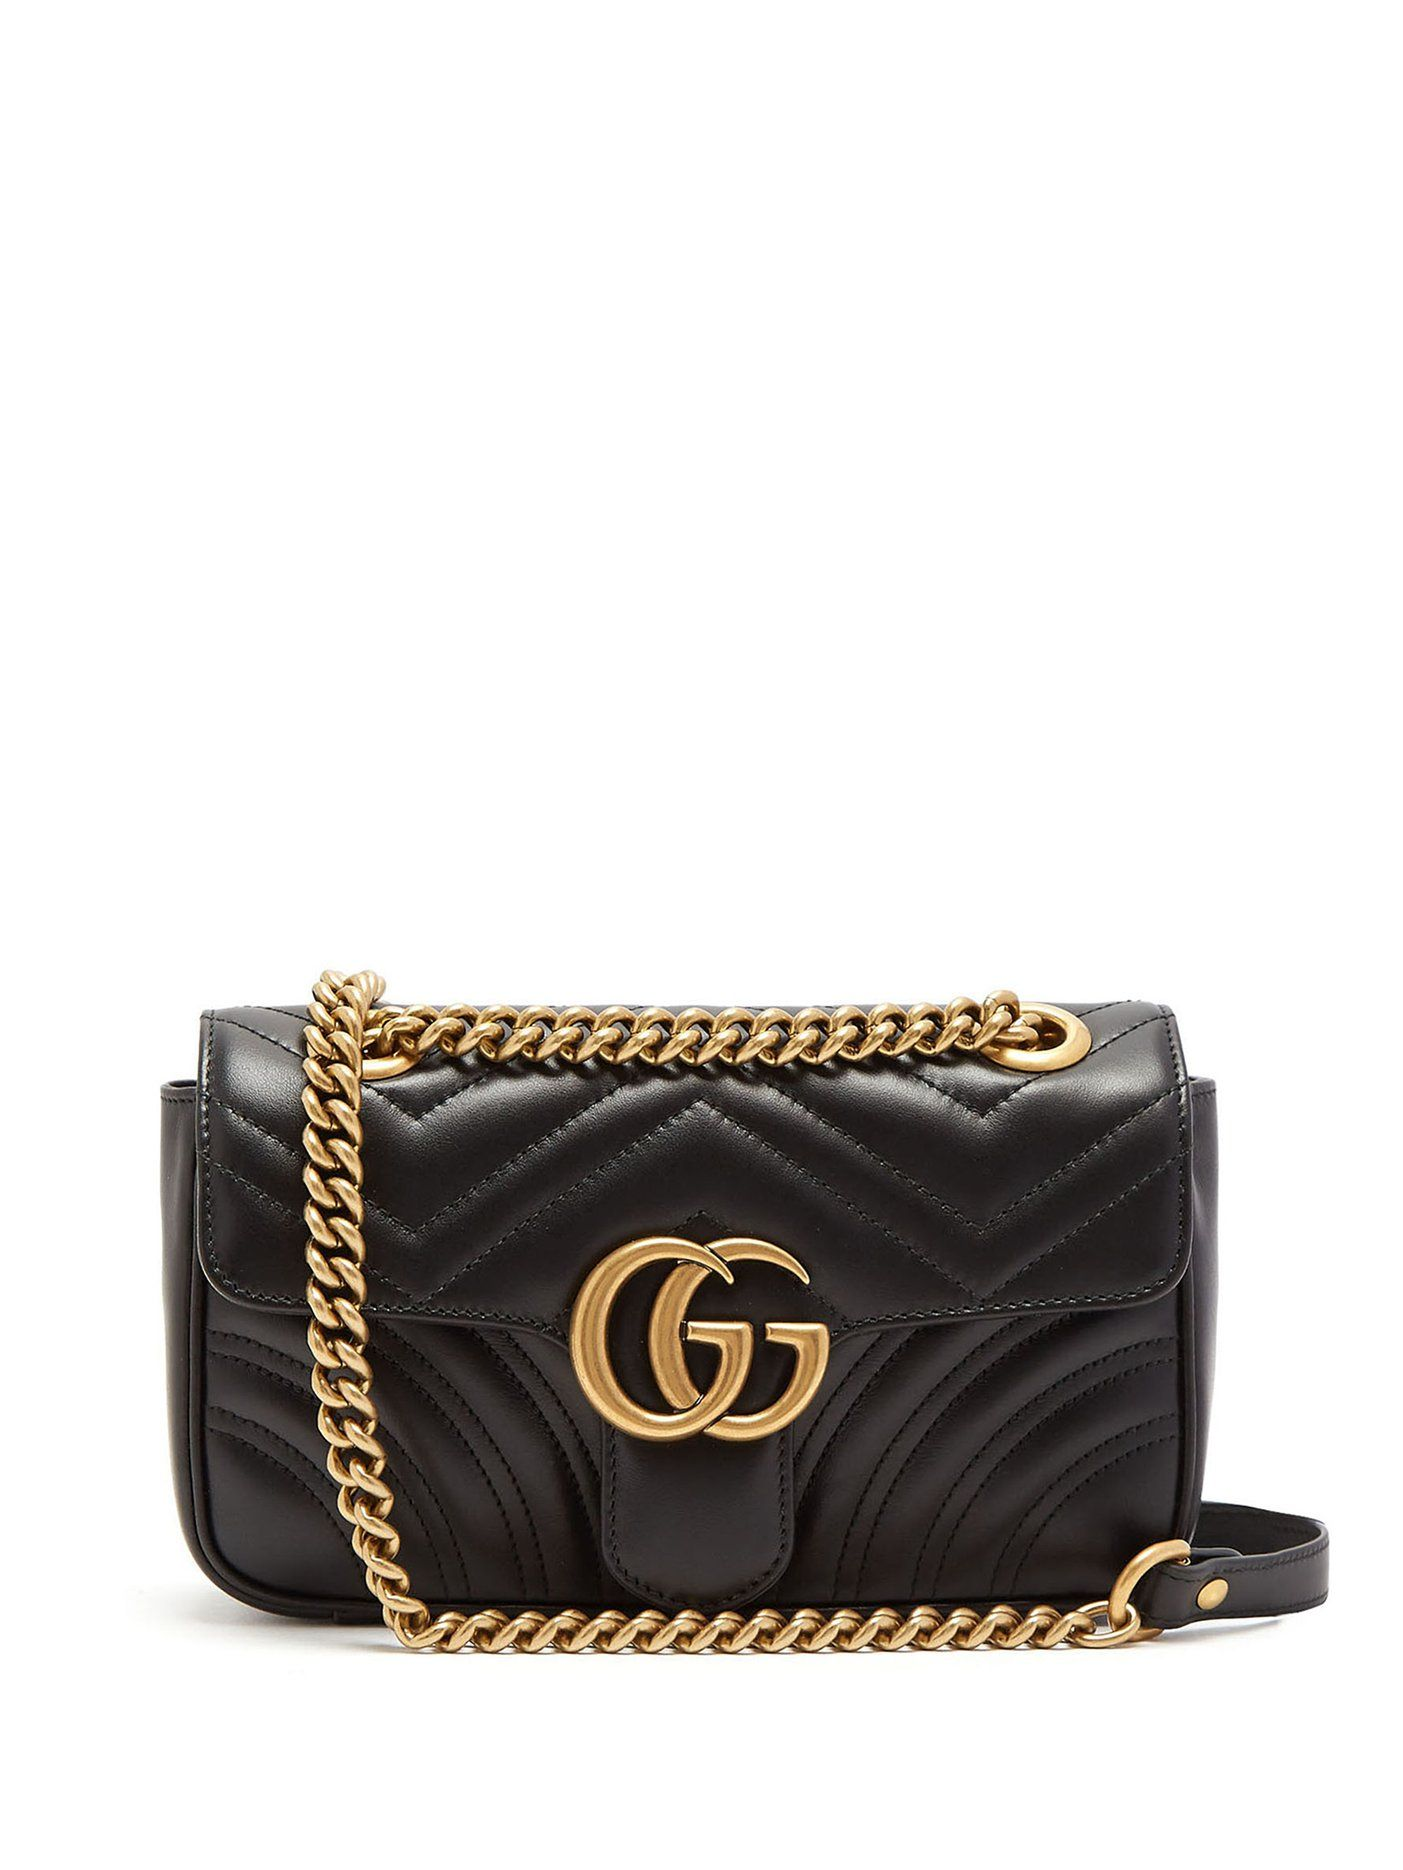 795595a07 GG Marmont small quilted-leather cross-body bag | Gucci |  MATCHESFASHION.COM US